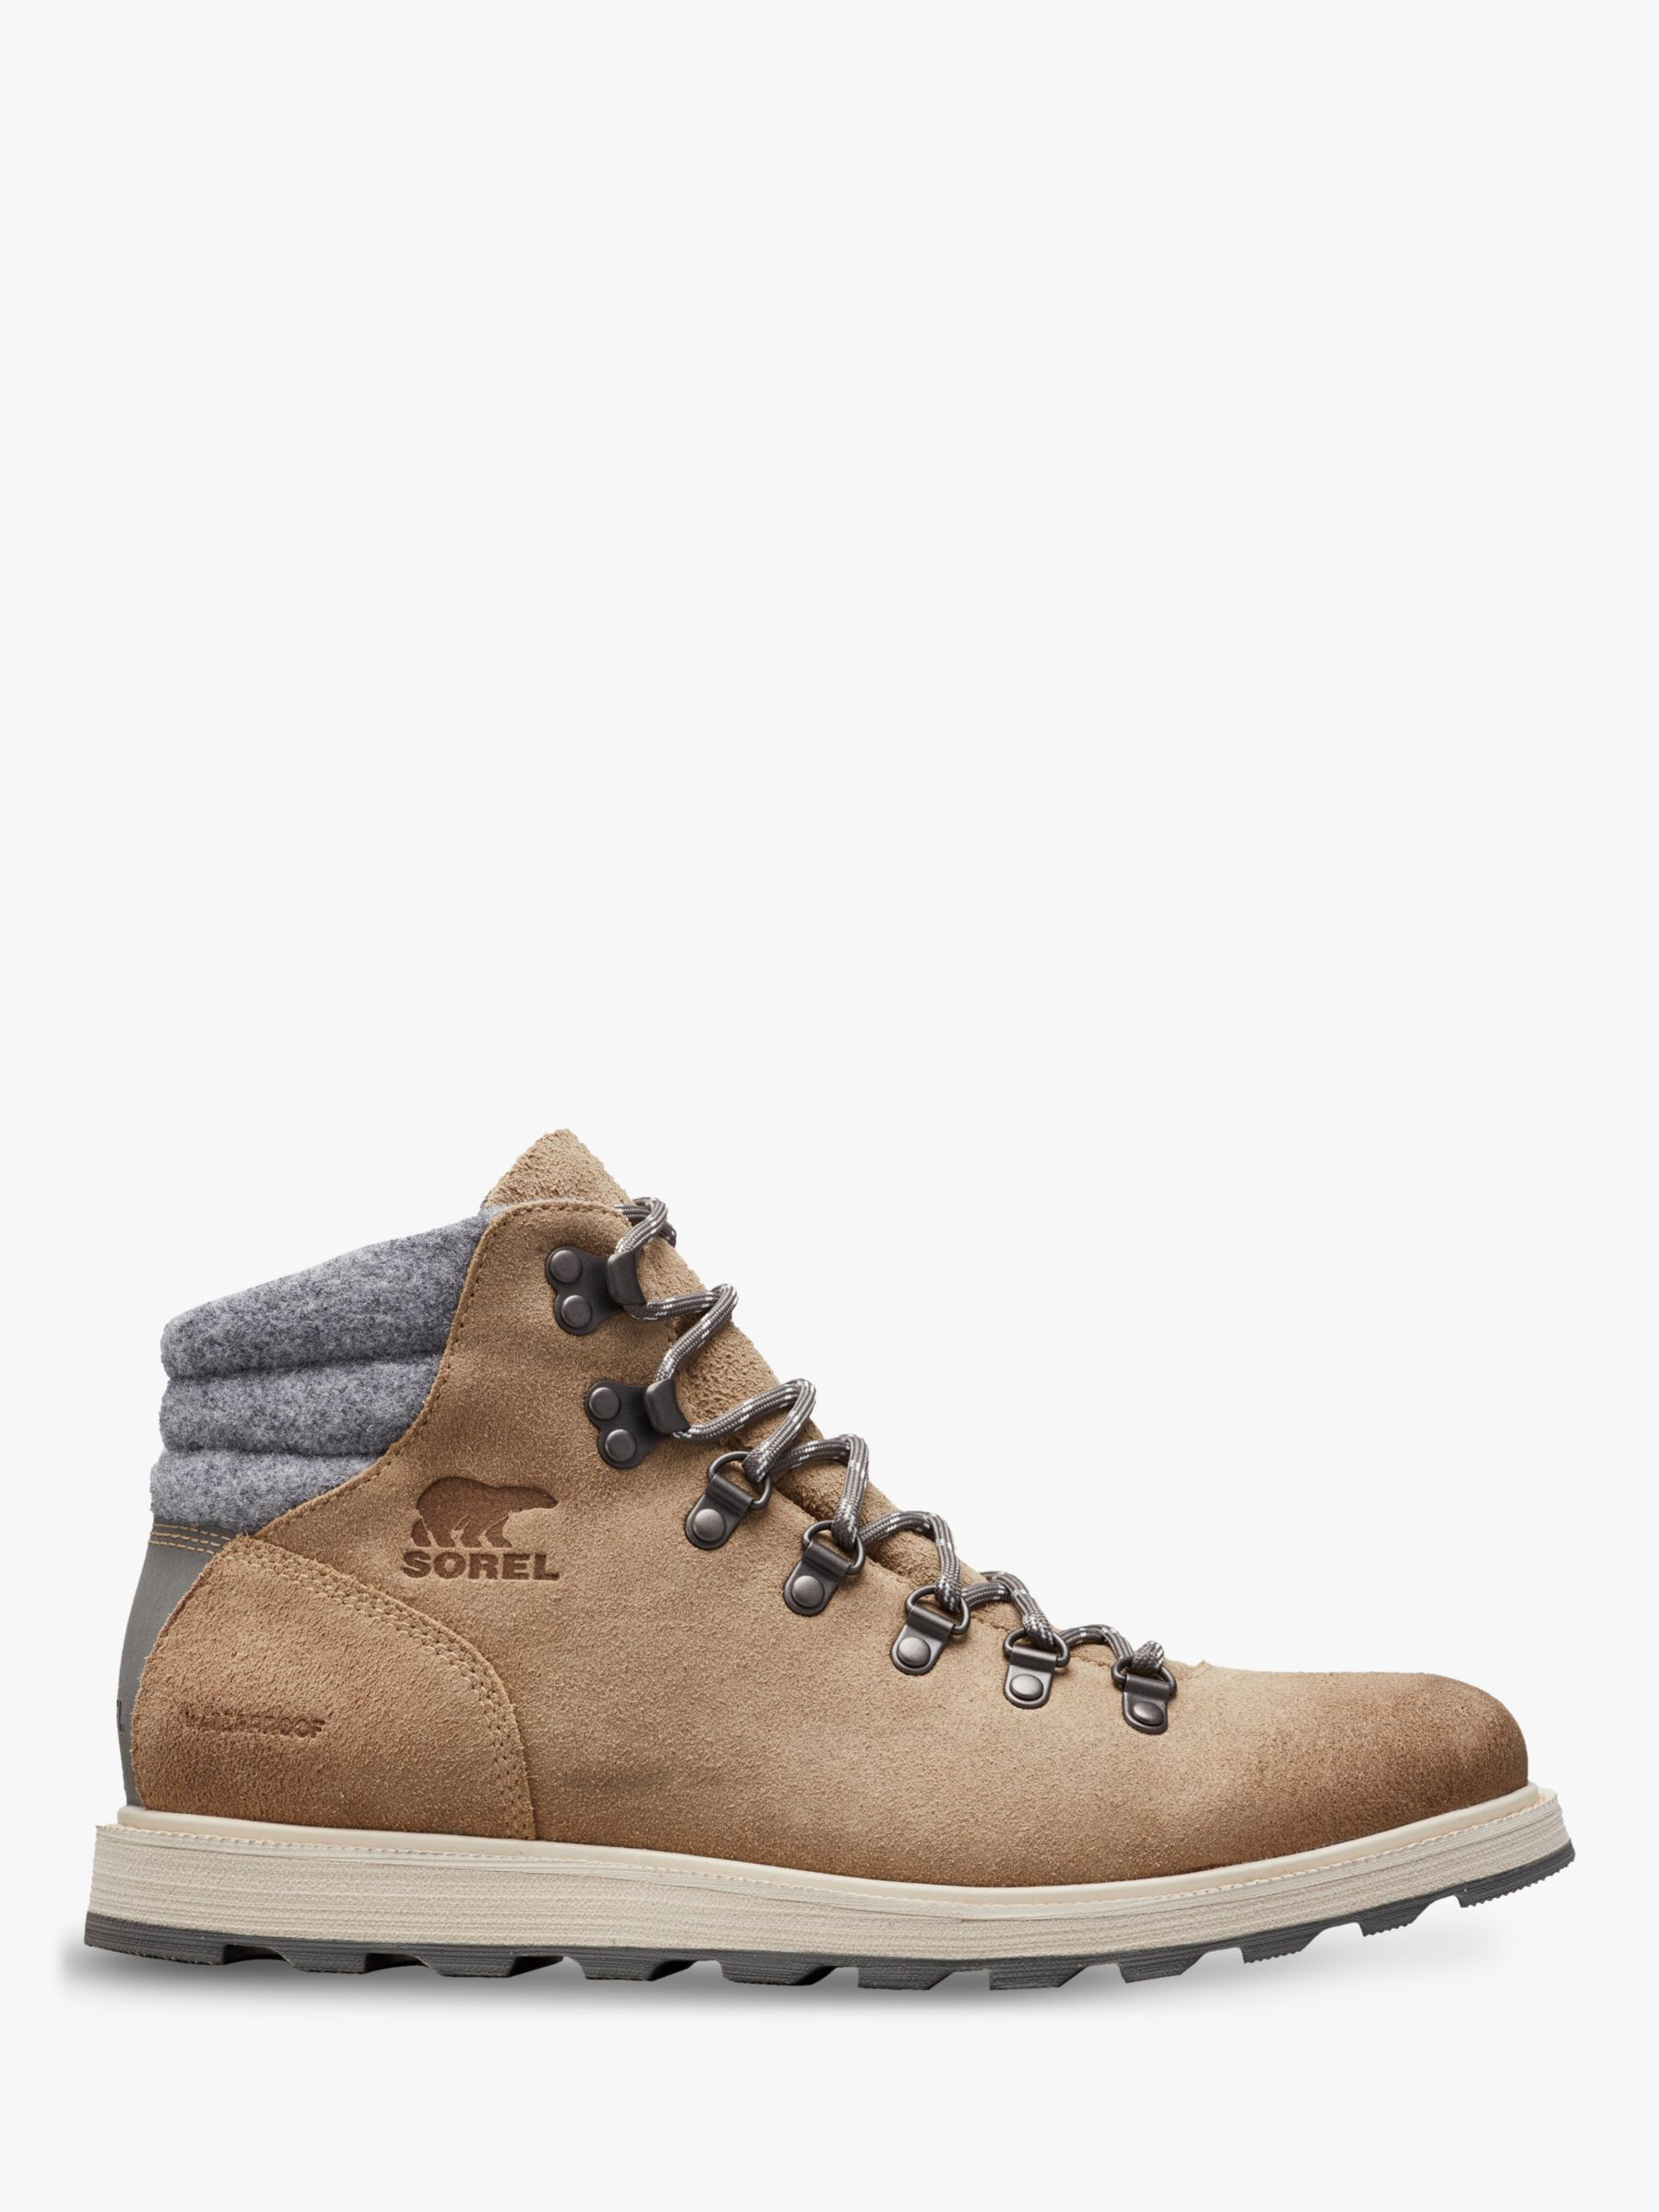 Sorel SOREL Madson Waterproof Hiker Boots, Oatmeal Quarry